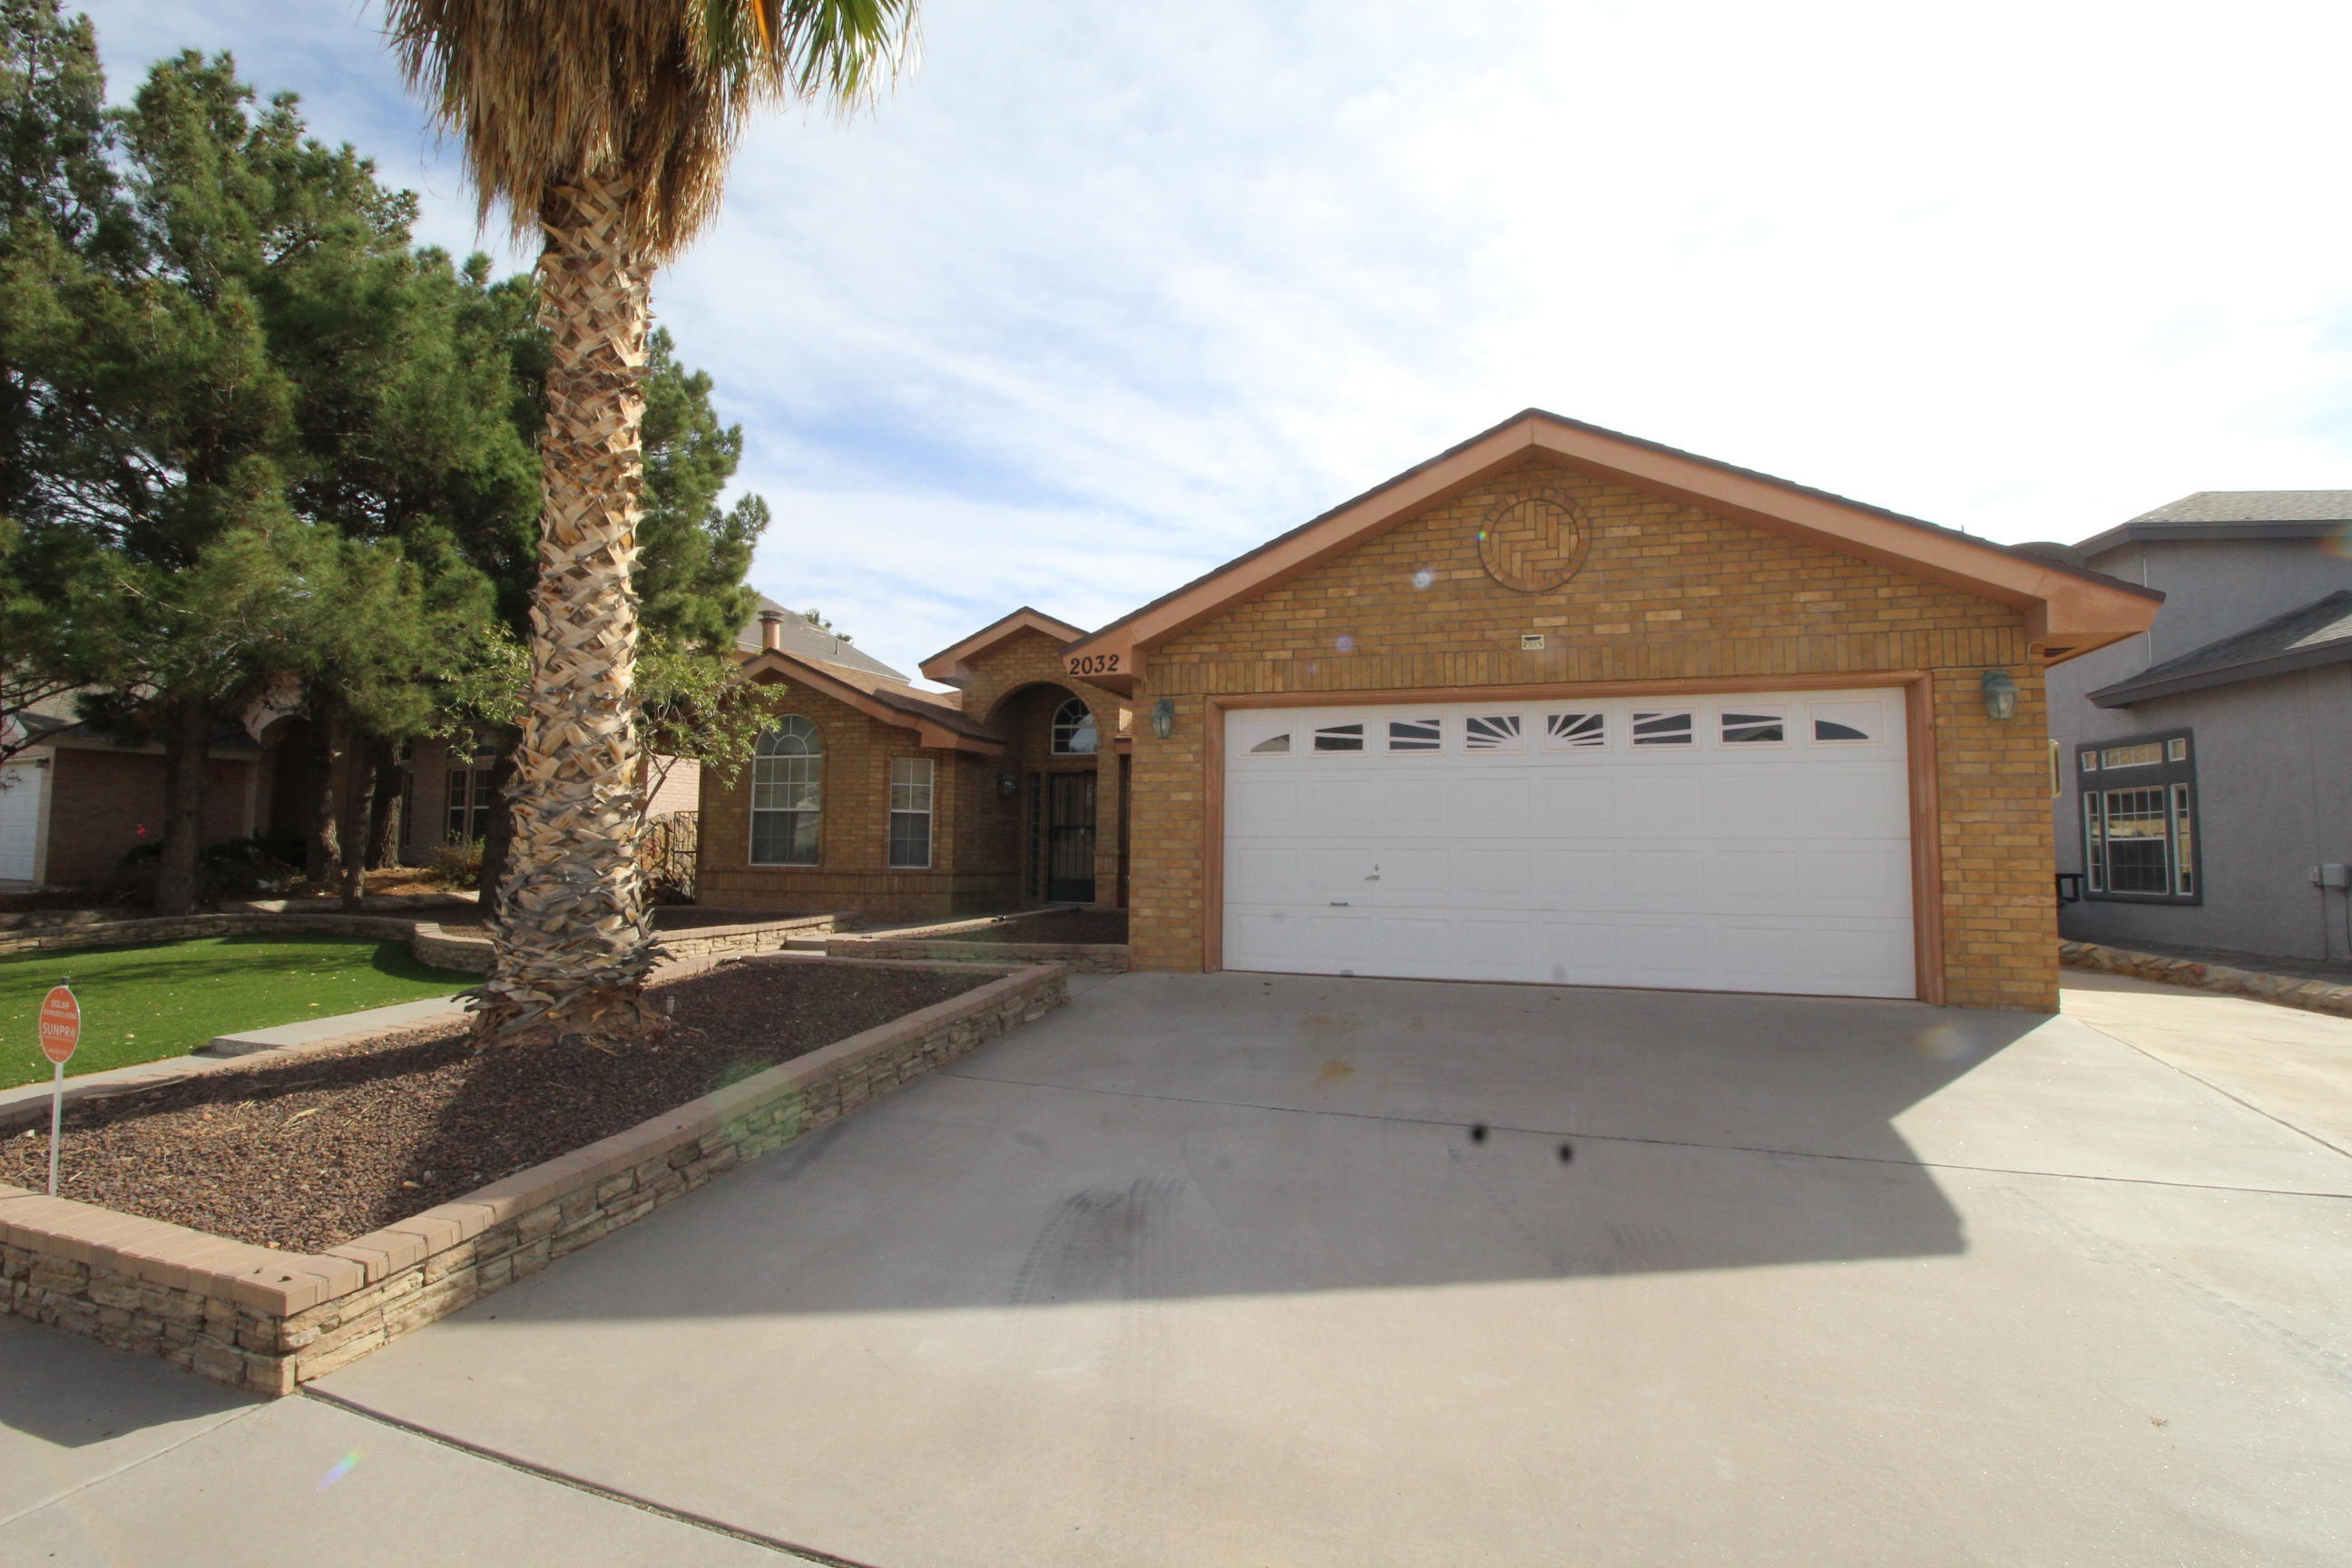 2032 SUN COUNTRY, El Paso, Texas 79938, 3 Bedrooms Bedrooms, ,2 BathroomsBathrooms,Residential,For sale,SUN COUNTRY,837461